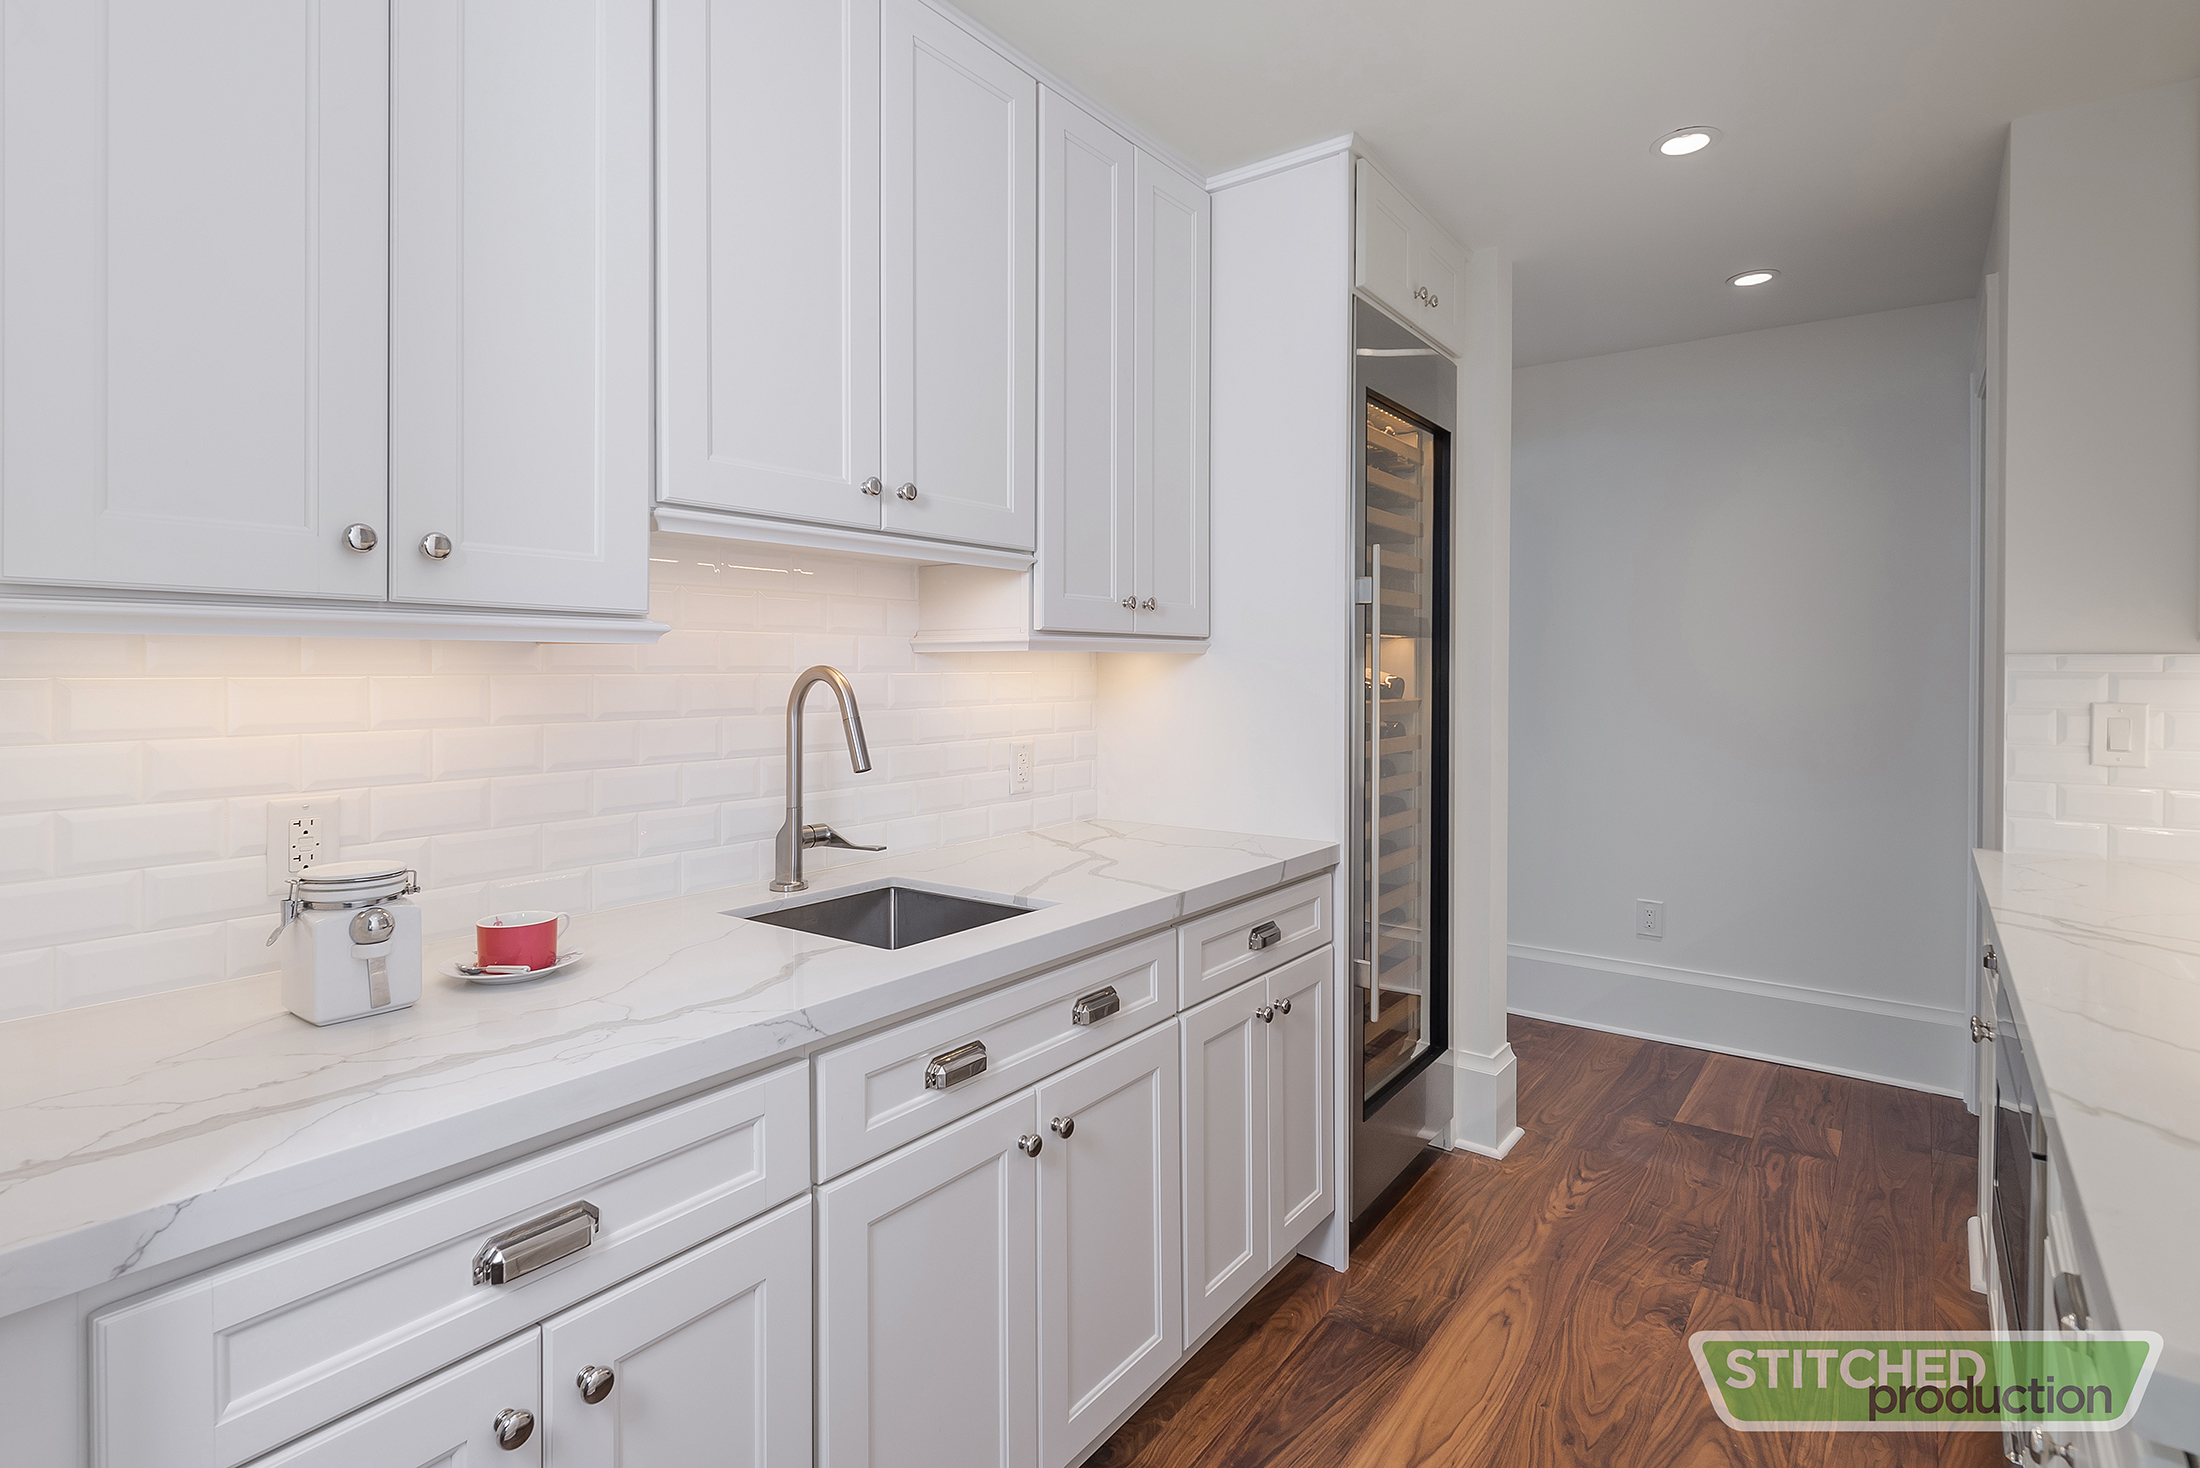 Famous Kabco Kitchens Ensign - Kitchen Cabinets | Ideas ...